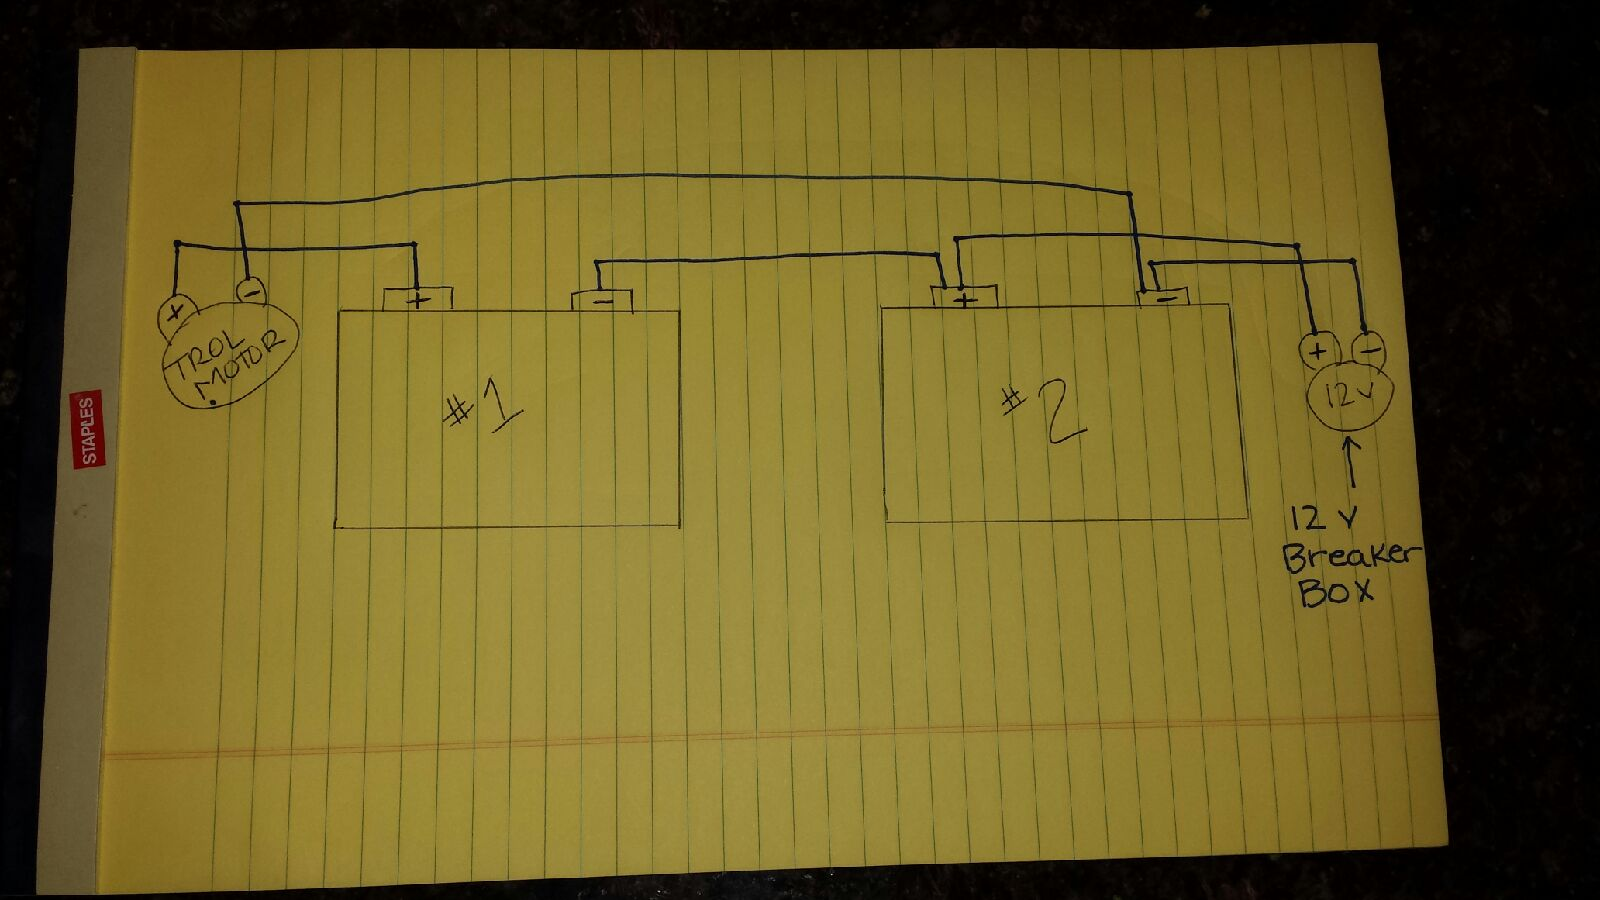 12v 24v diagram how to wire 24 volt trolling motor and 12 volt power pole on 2 12 24 volt wiring diagram for trolling motor at gsmx.co